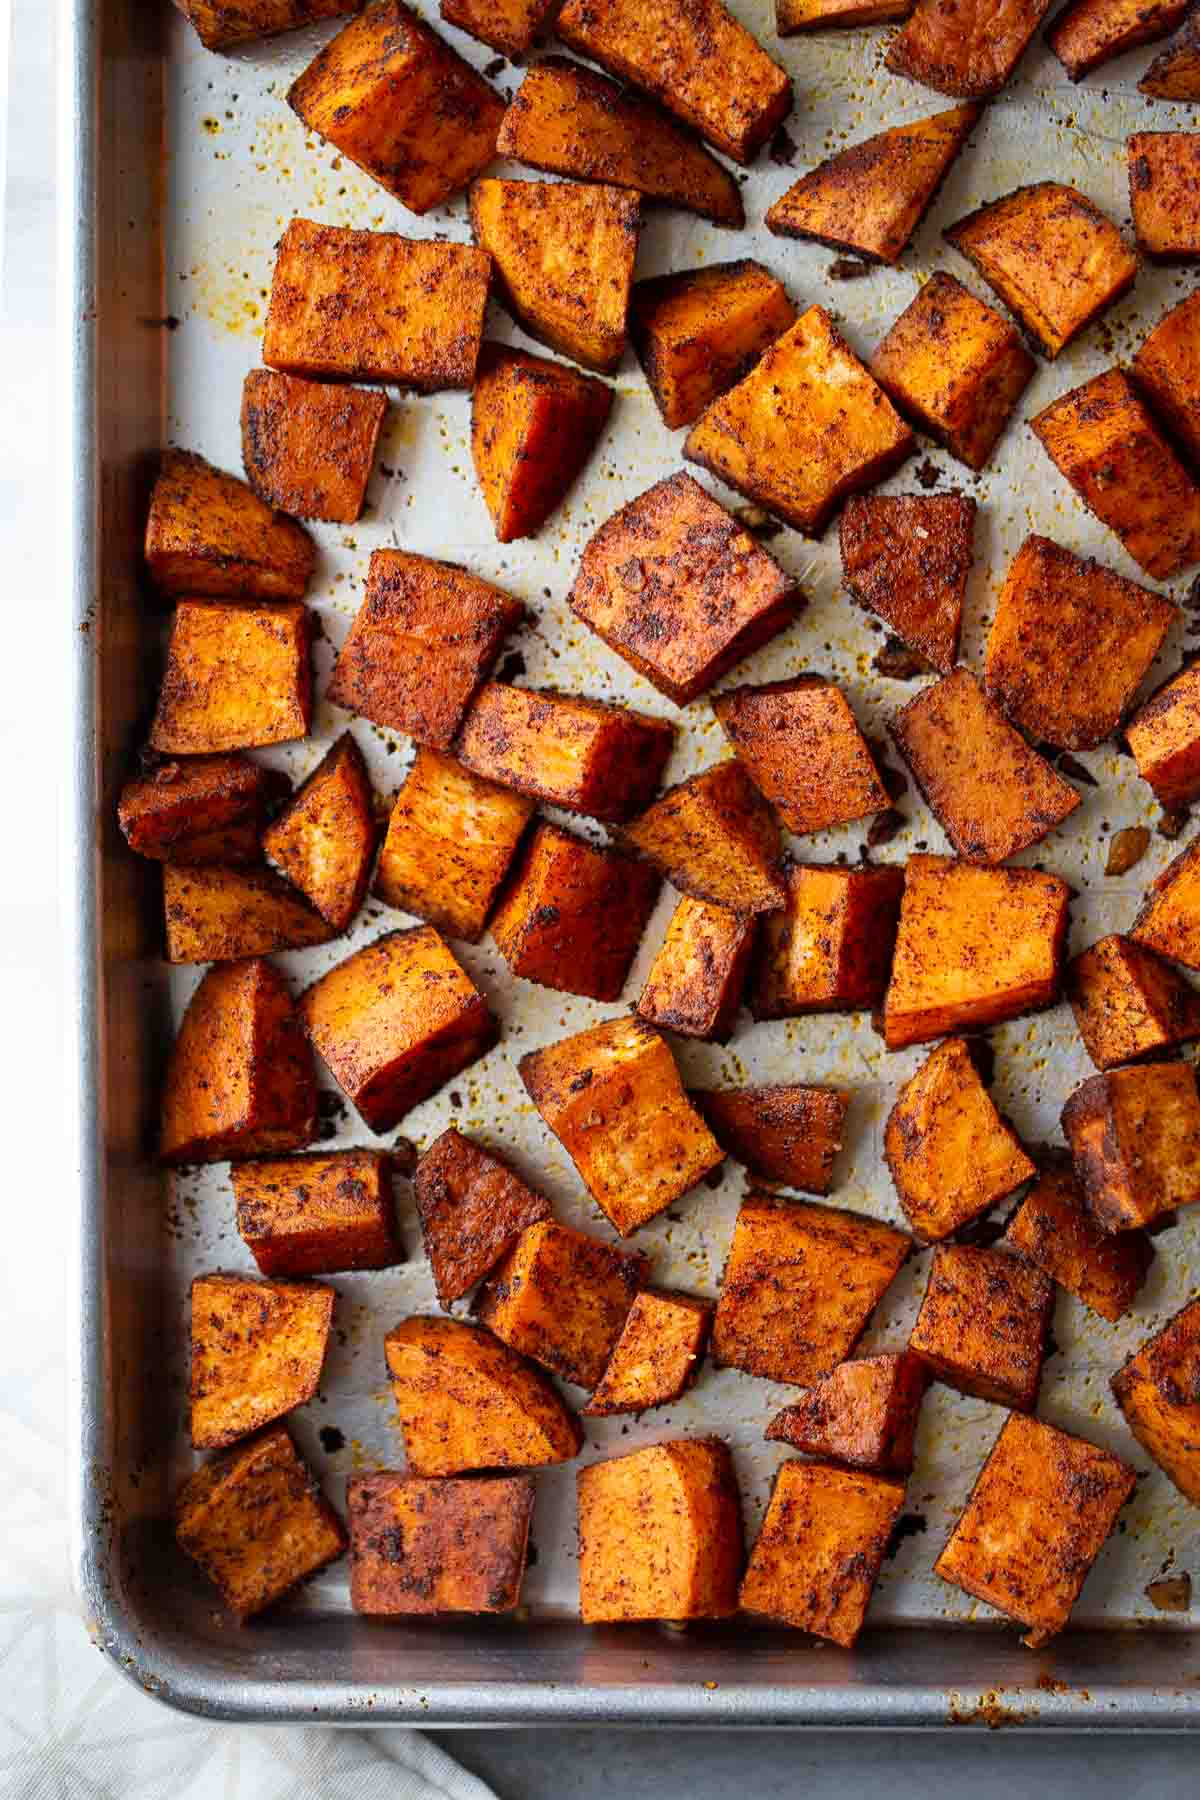 Roasted Sweet Potatoes cubes seasoned with chili powder on pan